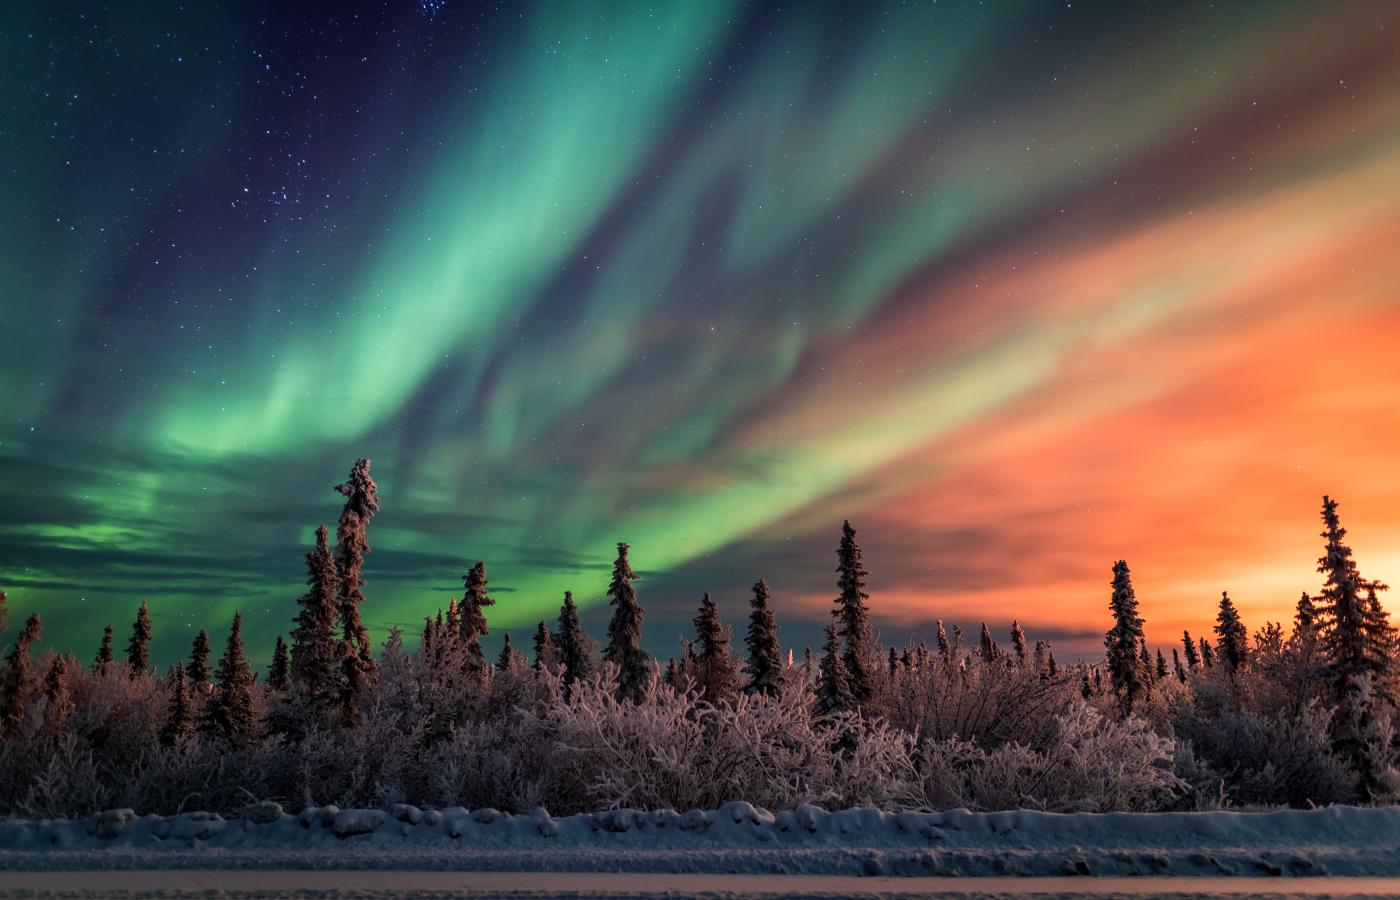 Billing colours of the Aurora in the sky along the Dempster highway in the Northwest Territoires. photo credit Kristian Binder